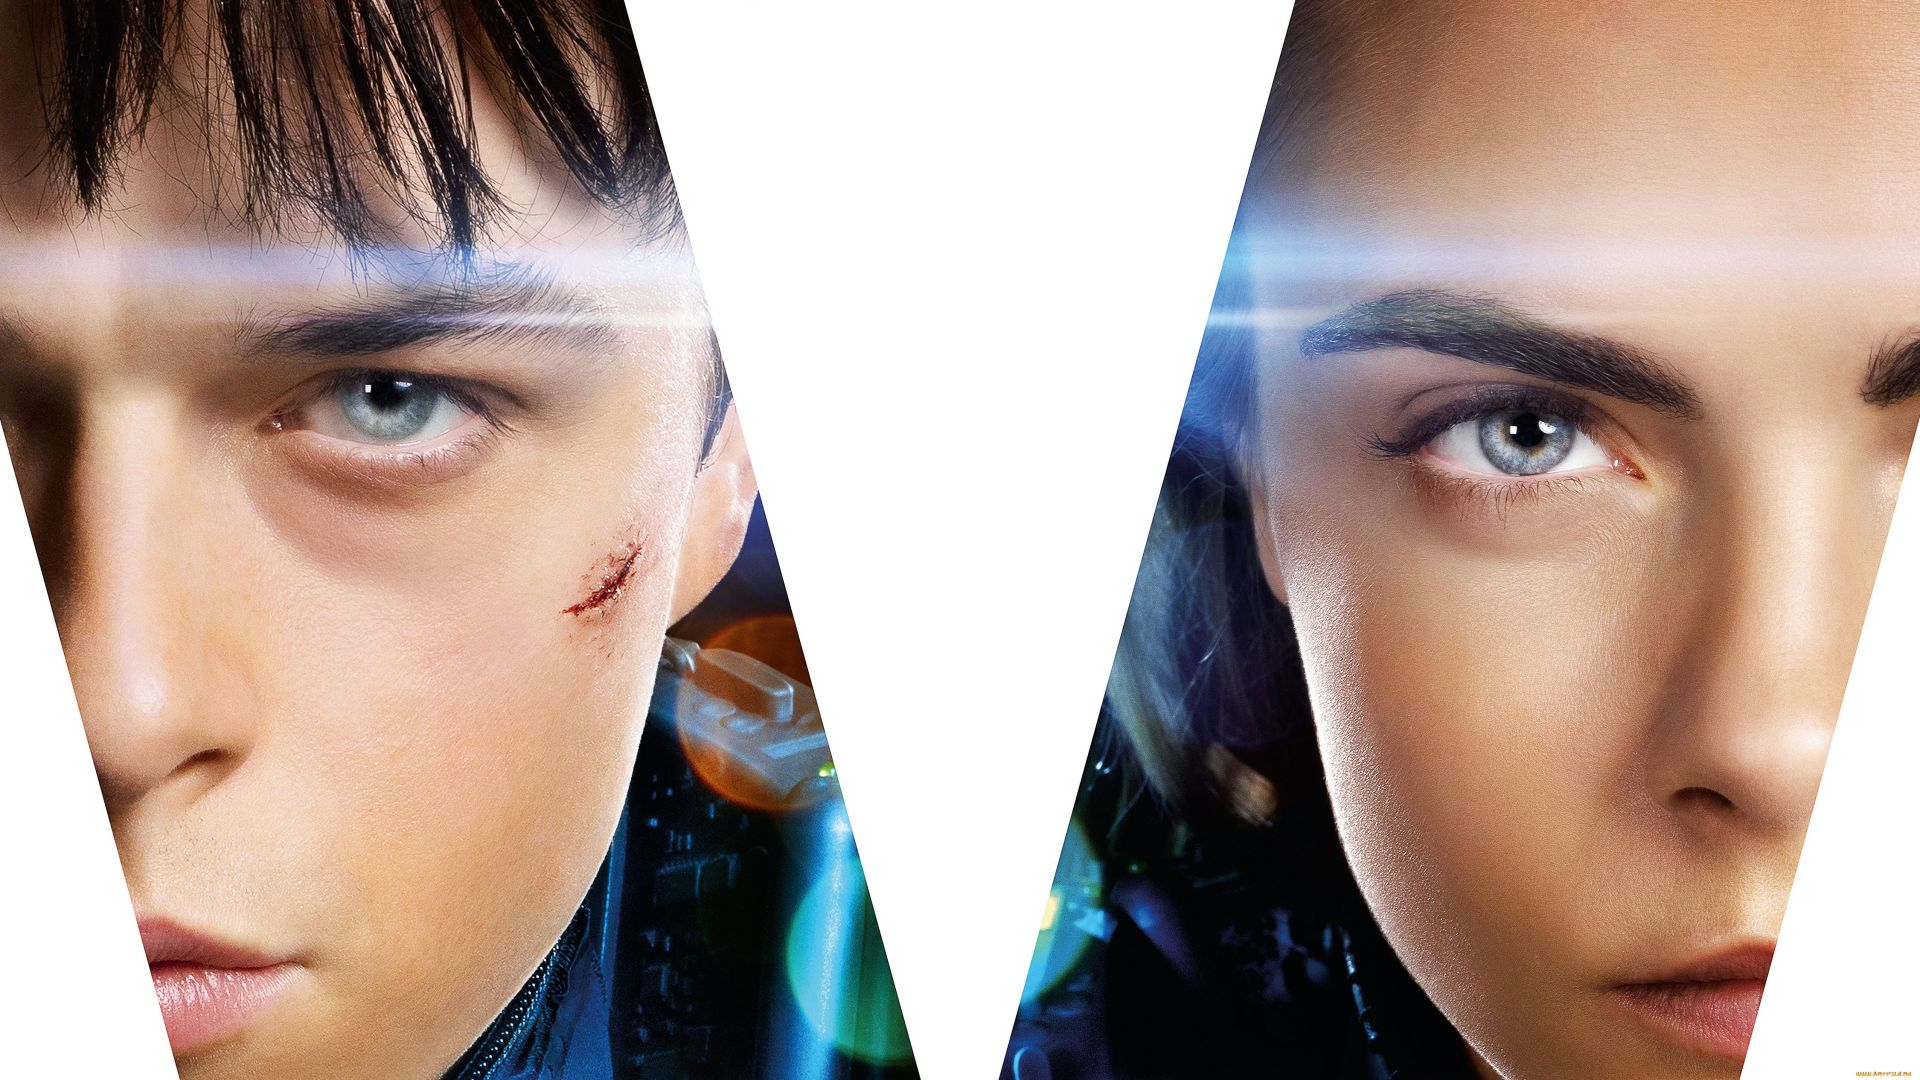 Valerian and the City of a Thousand Planets, 4k, Cara Delevingne, Dane DeHaan (horizontal)